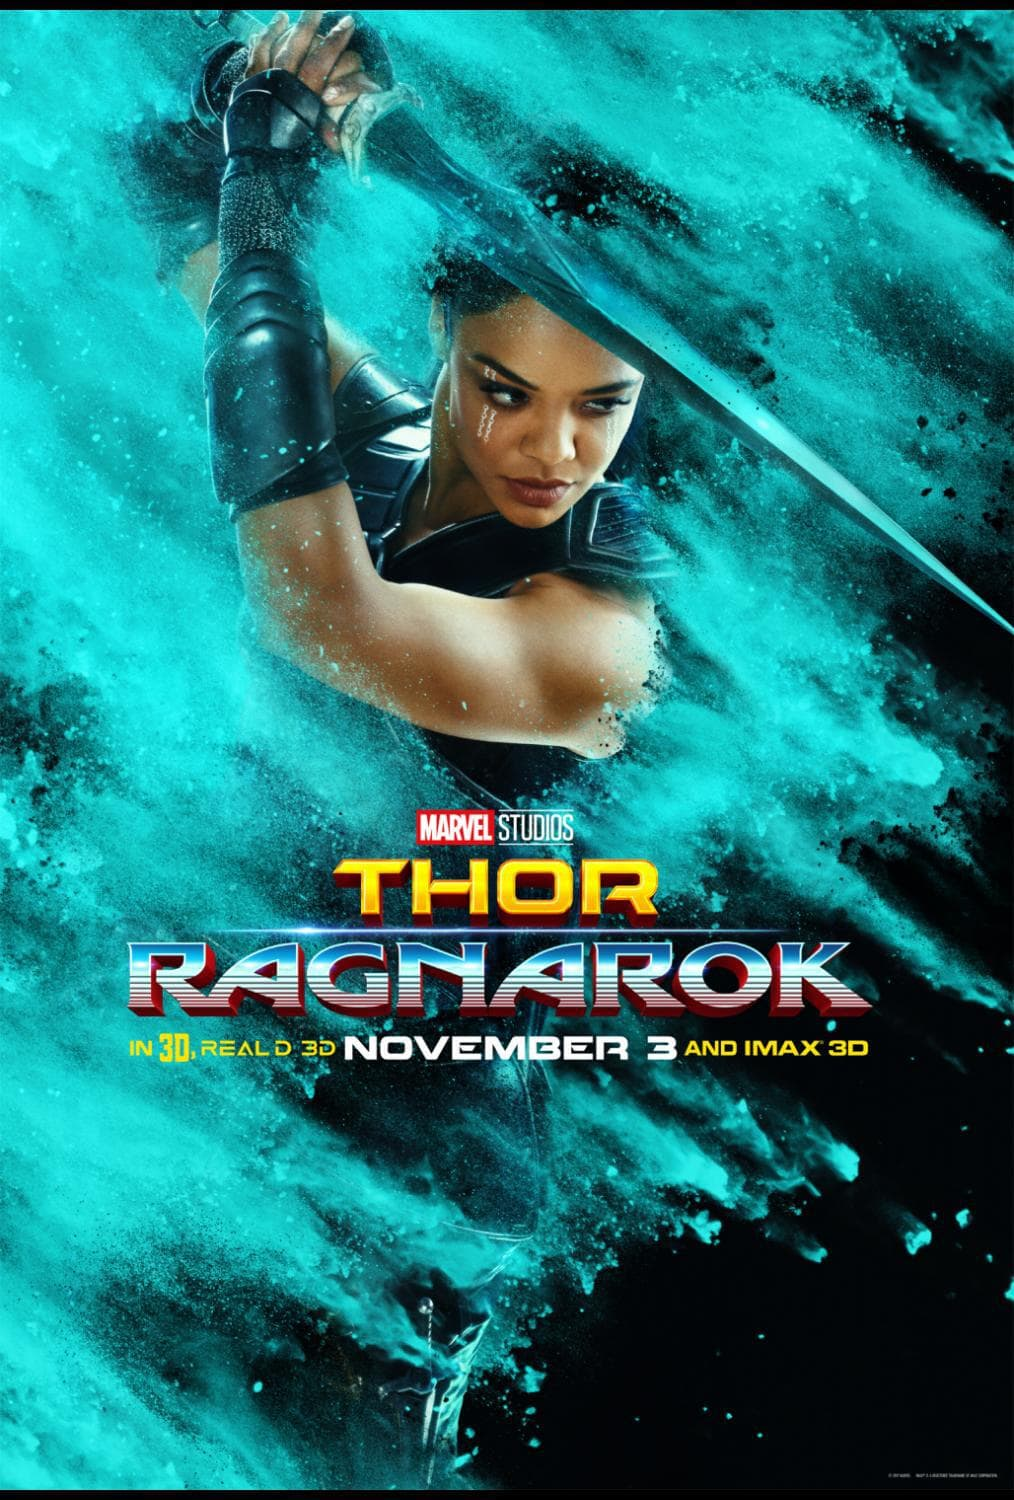 THOR: RAGNAROK New Posters Now Available